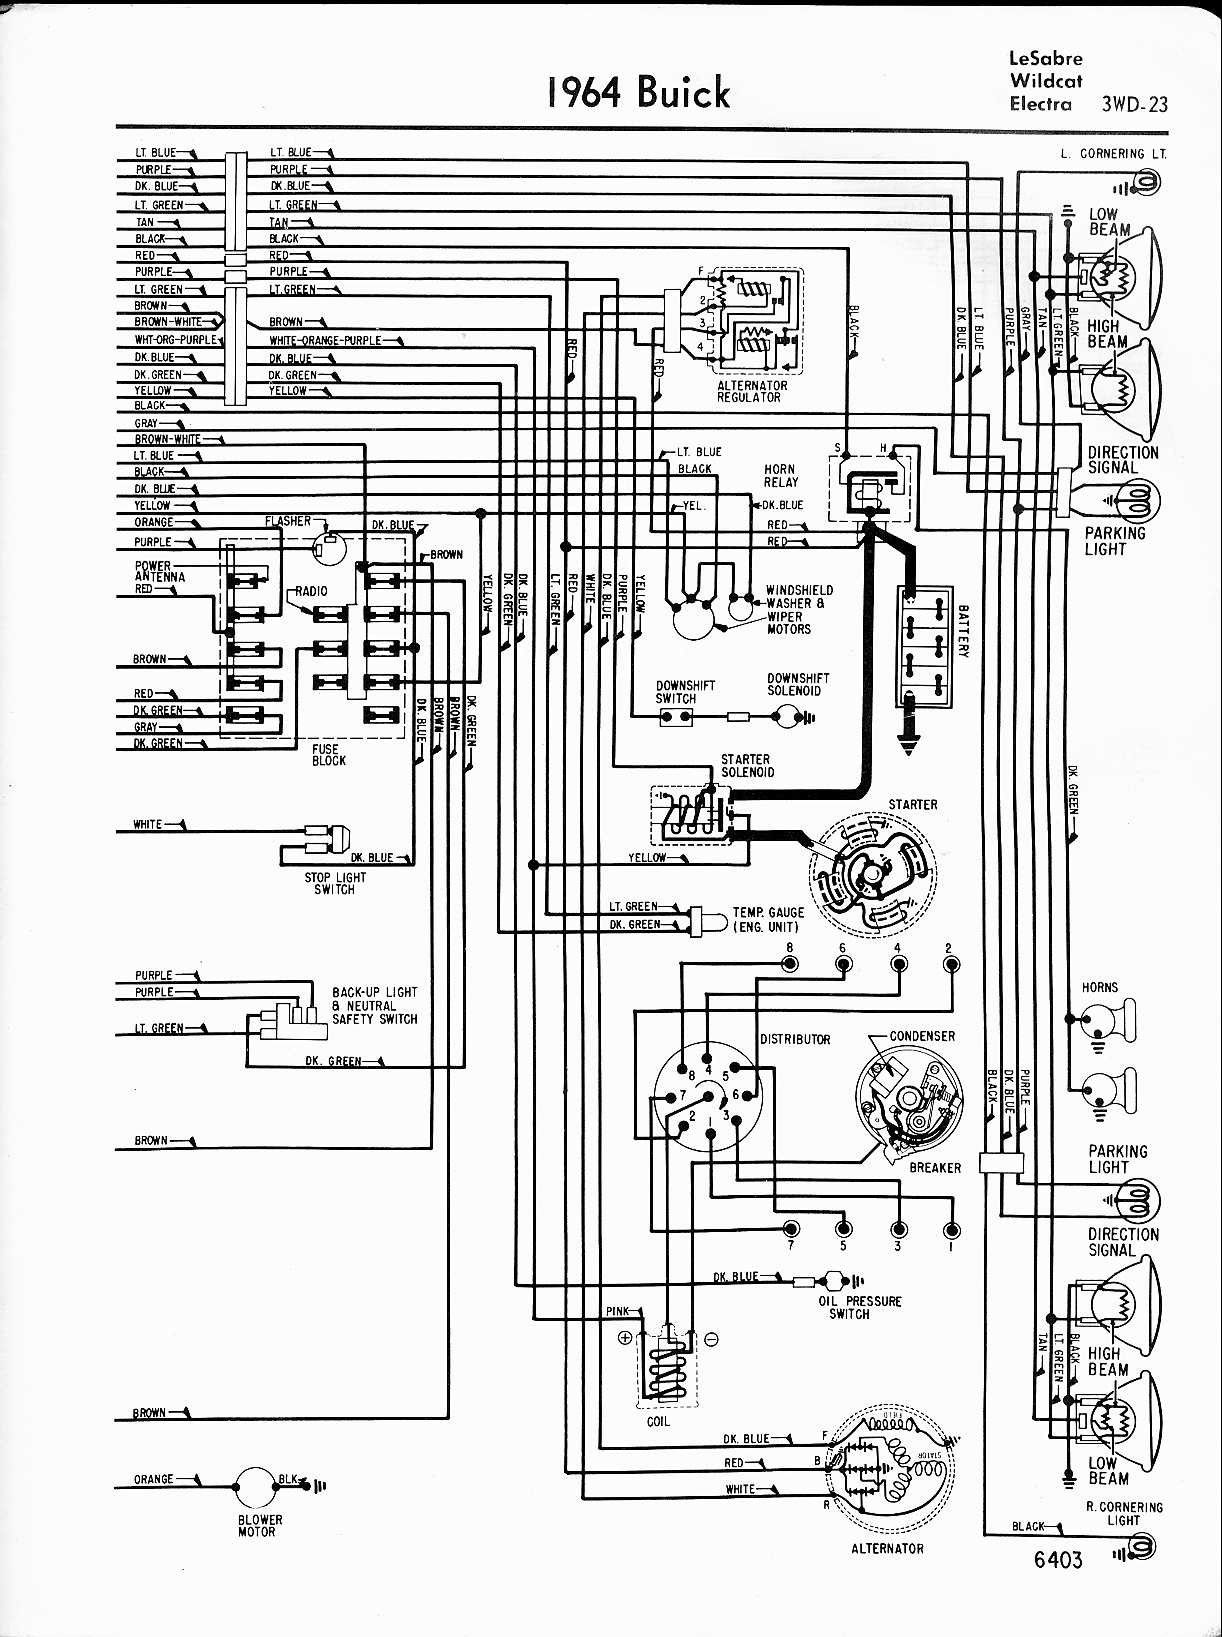 [SODI_2457]   22 Stunning Free Vehicle Wiring Diagrams ,  https://bacamajalah.com/22-stunning-free-vehicle-wiring-diagrams/ ,  #diagra… | Diagram, Schematic drawing, Buick lesabre | Buick Lesabre Wiring Diagram Free |  | Pinterest